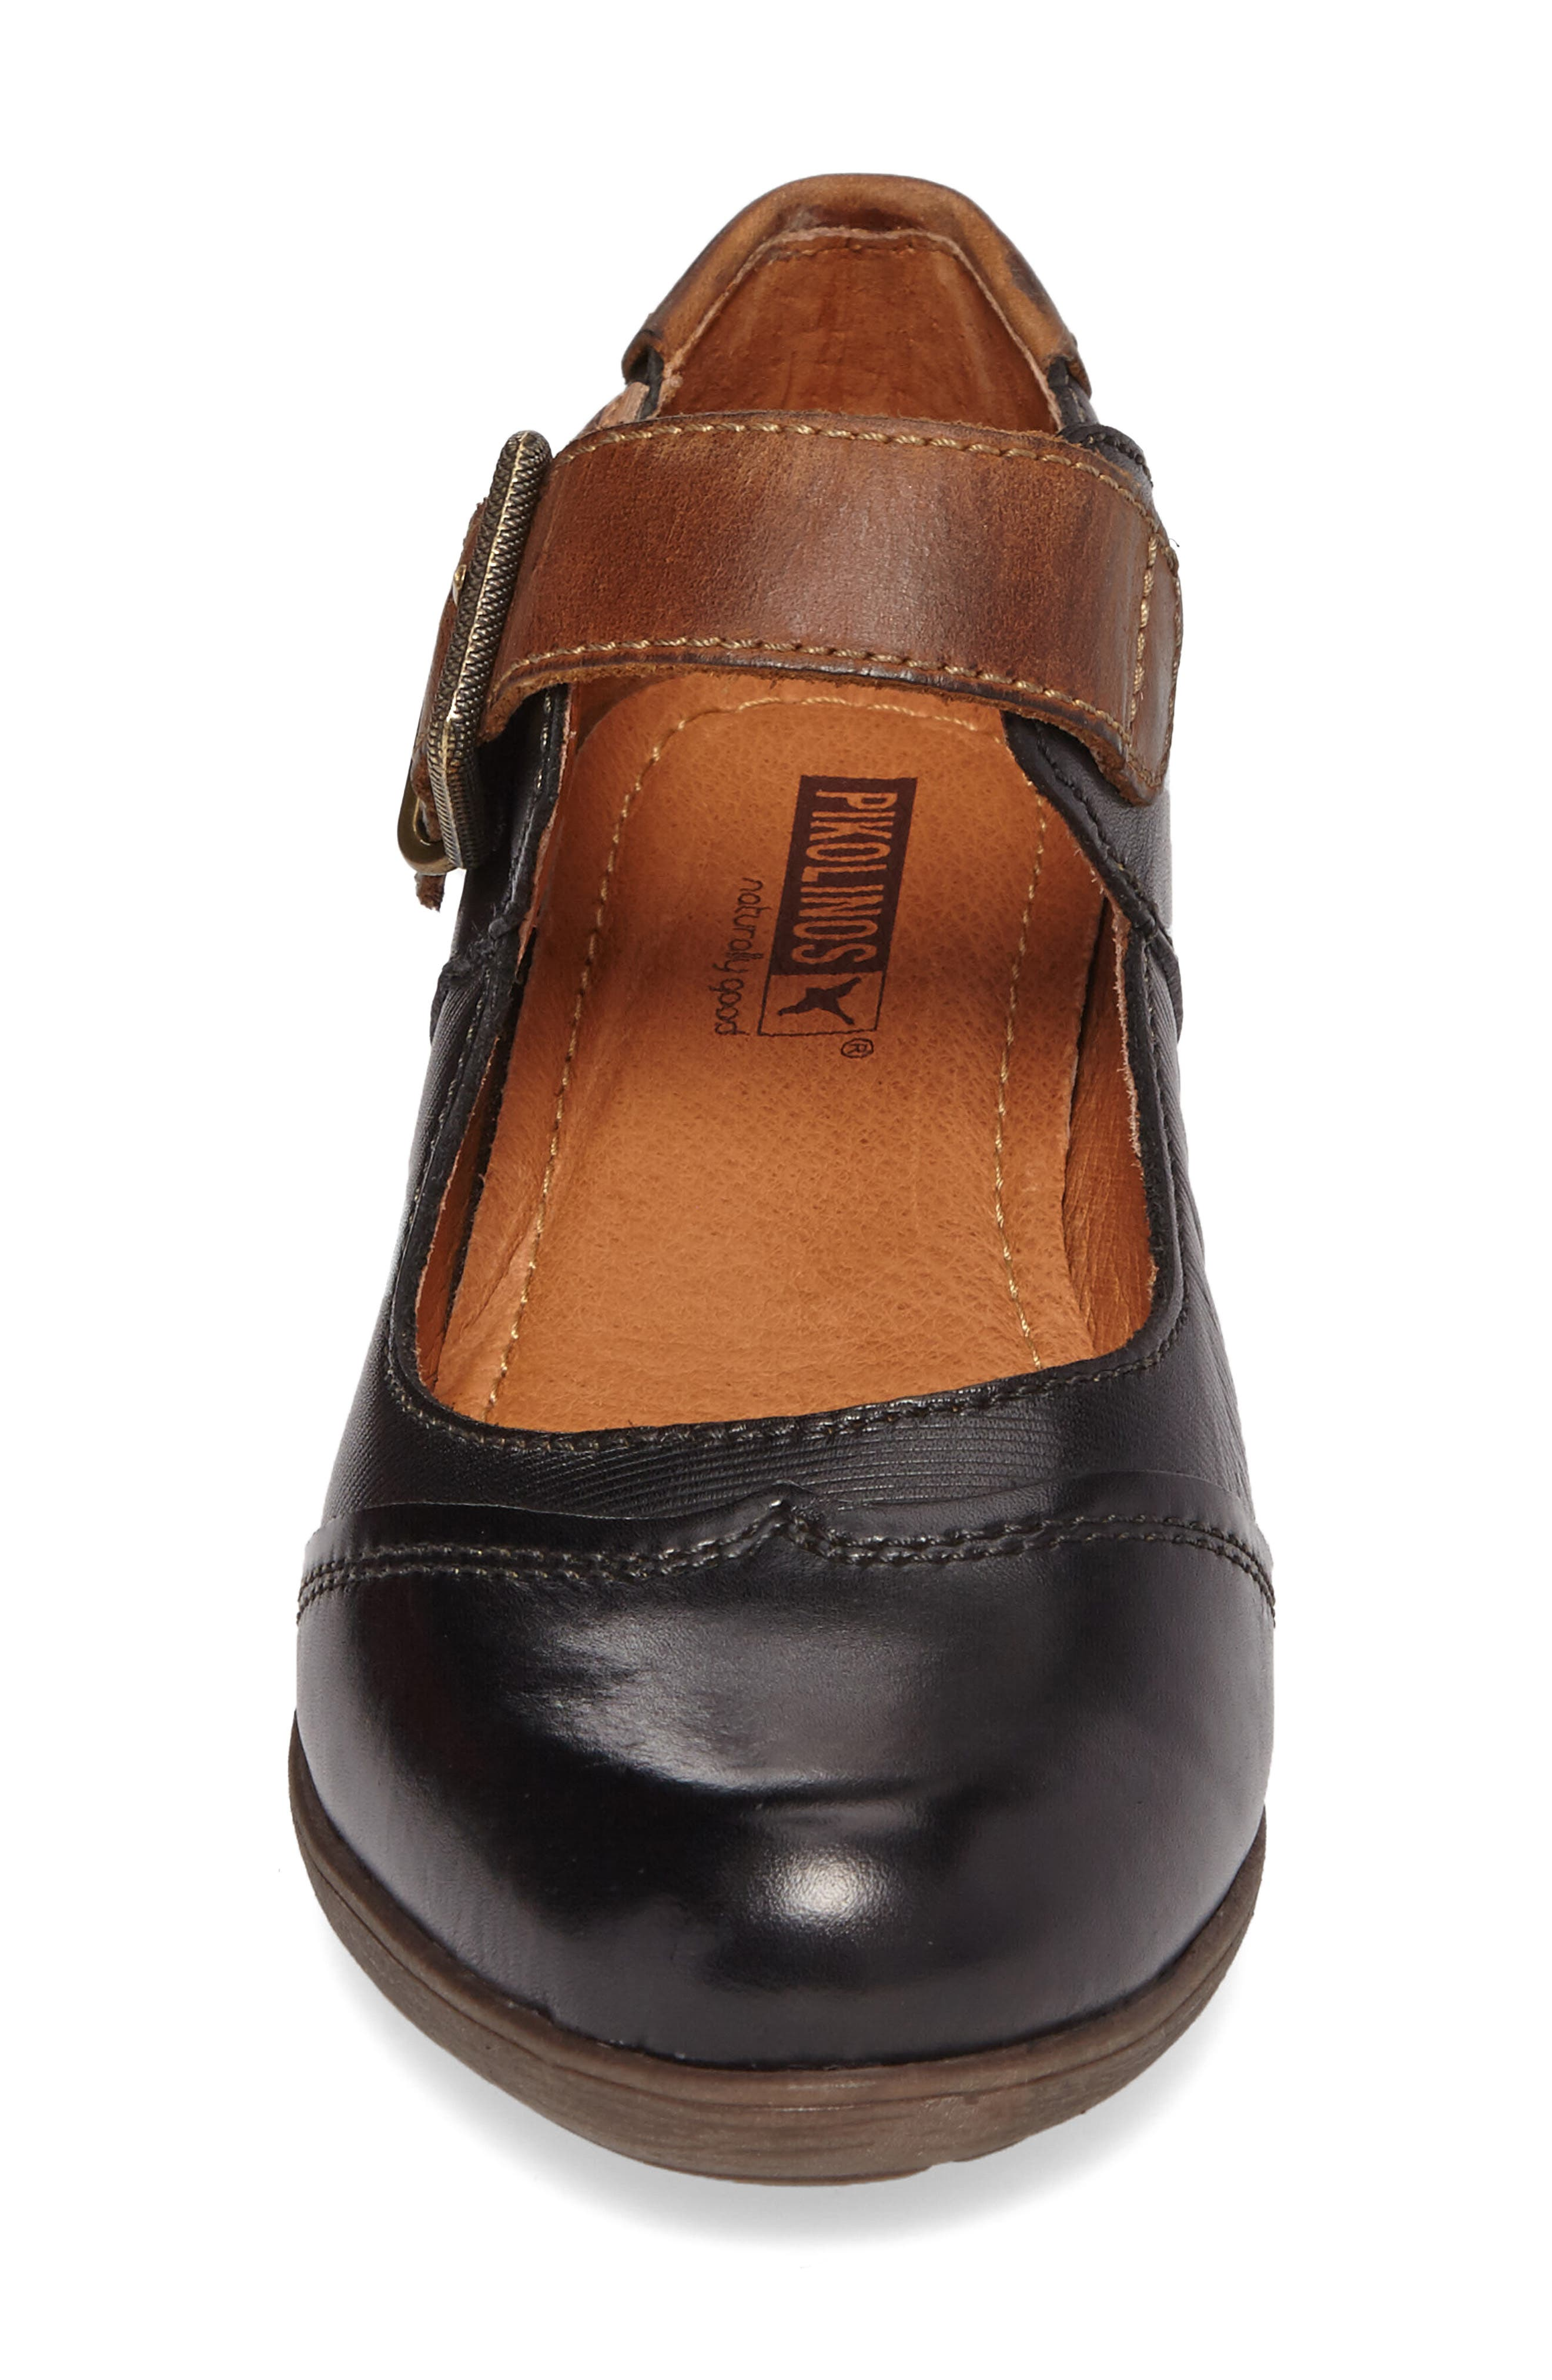 Rotterdam Water Resistant Mary Jane Pump,                             Alternate thumbnail 3, color,                             Black Leather